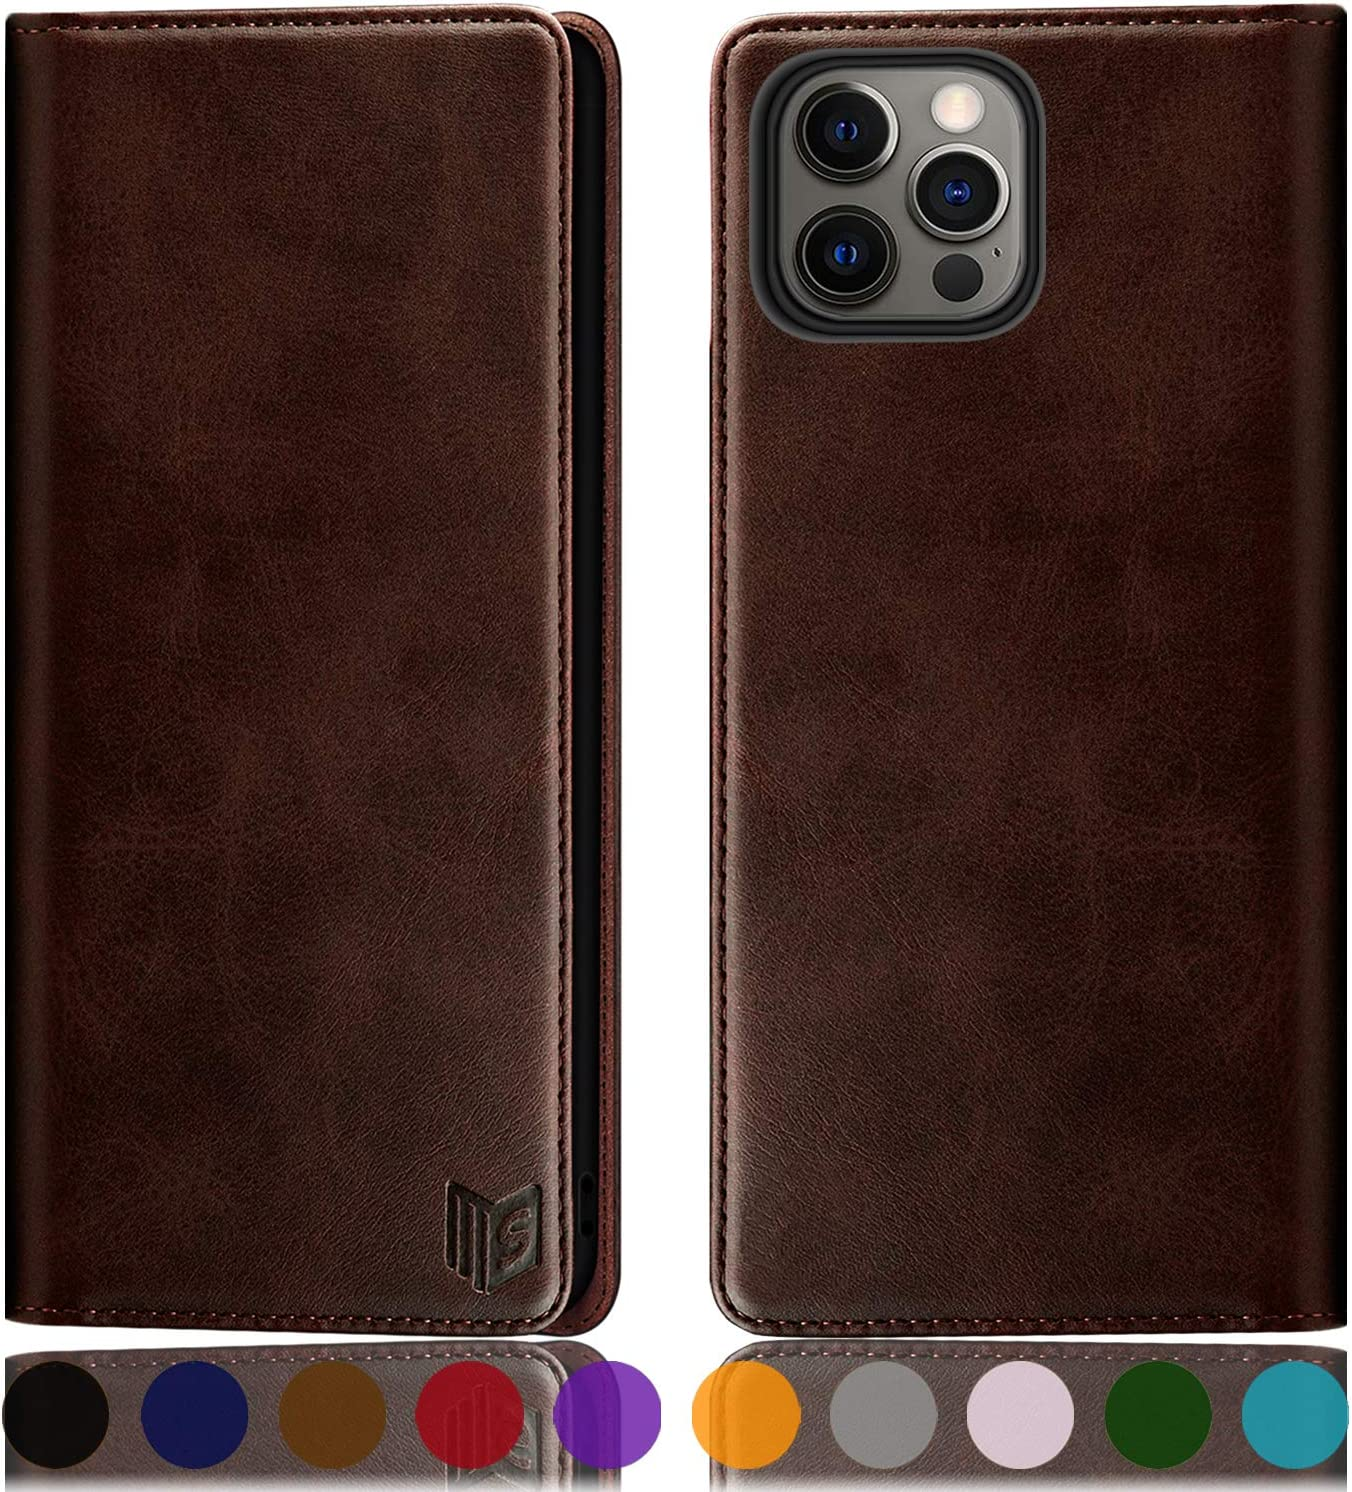 SUANPOT for iPhone 12 Pro Max Leather Wallet case with RFID Blocking Credit Card Holder, Flip Folio Book Magnetic PU Cell Phone Plus case for Apple 12 promax 5G Pocket case for Men Women 6.7 Brown